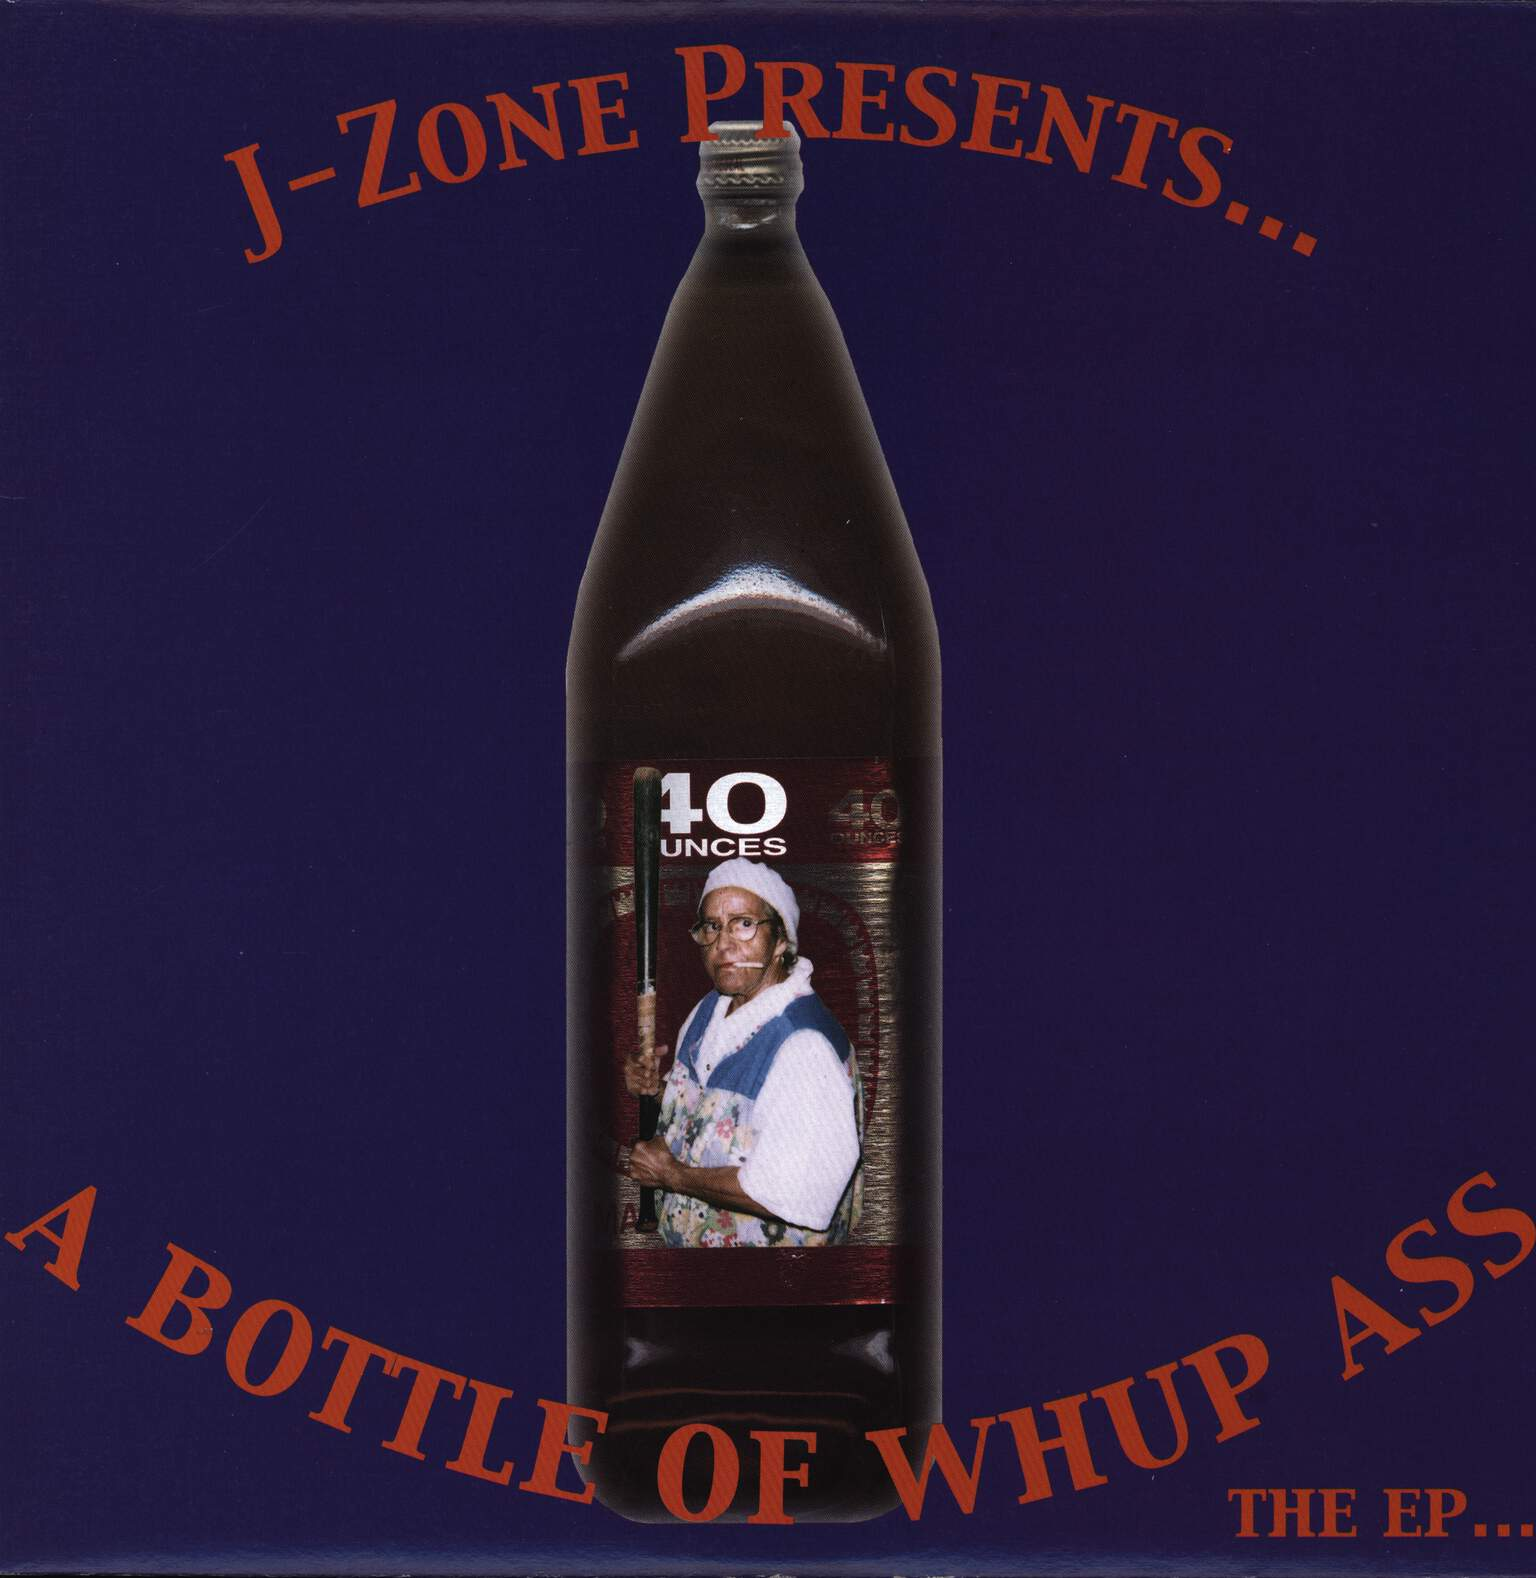 "J-Zone: A Bottle Of Whup Ass - The EP, 12"" Maxi Single (Vinyl)"